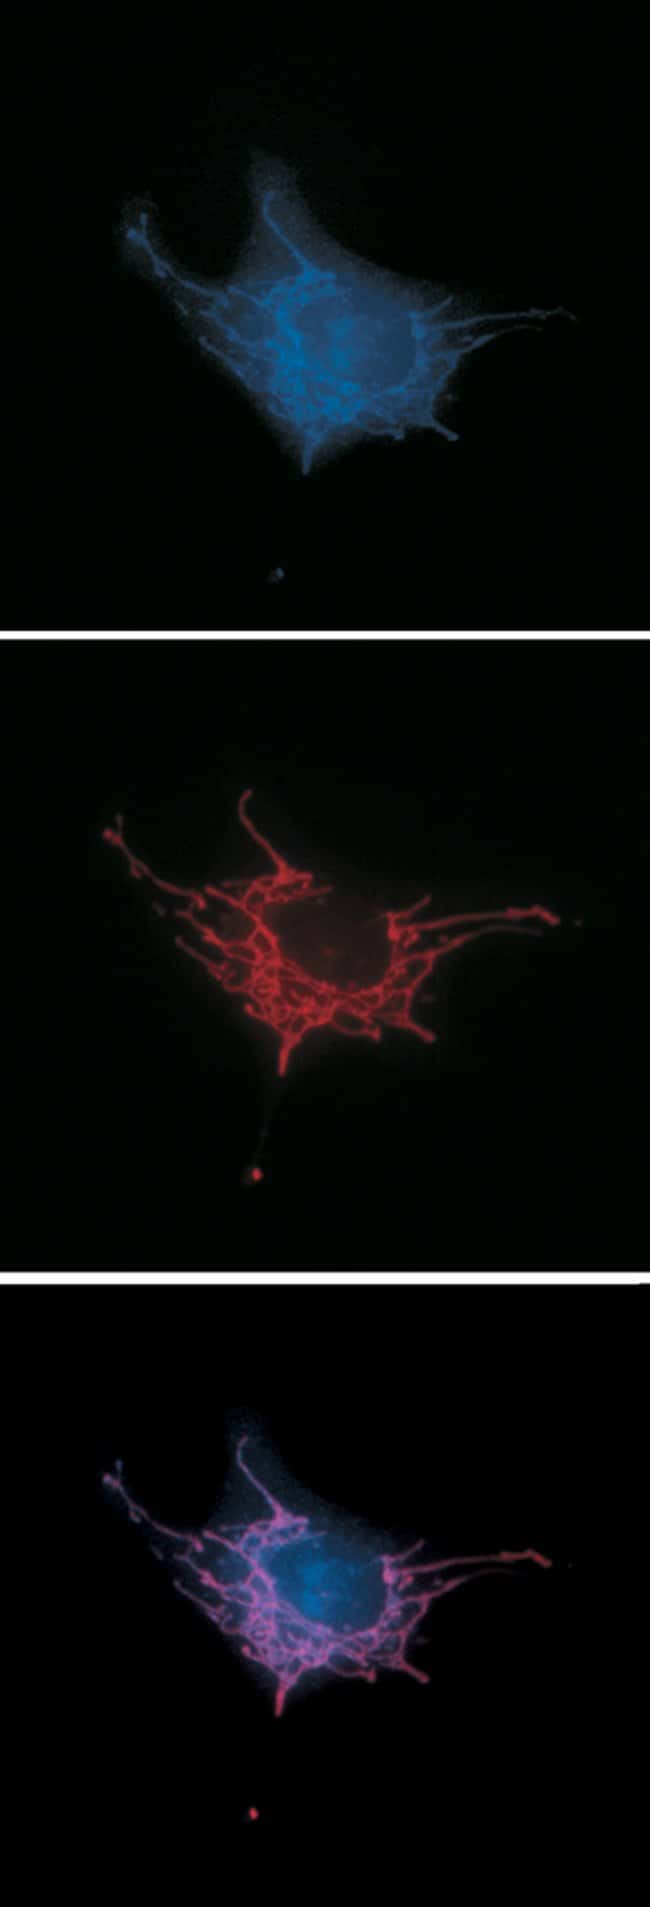 Mitochondrial staining of bovine pulmonary artery endothelial cells.